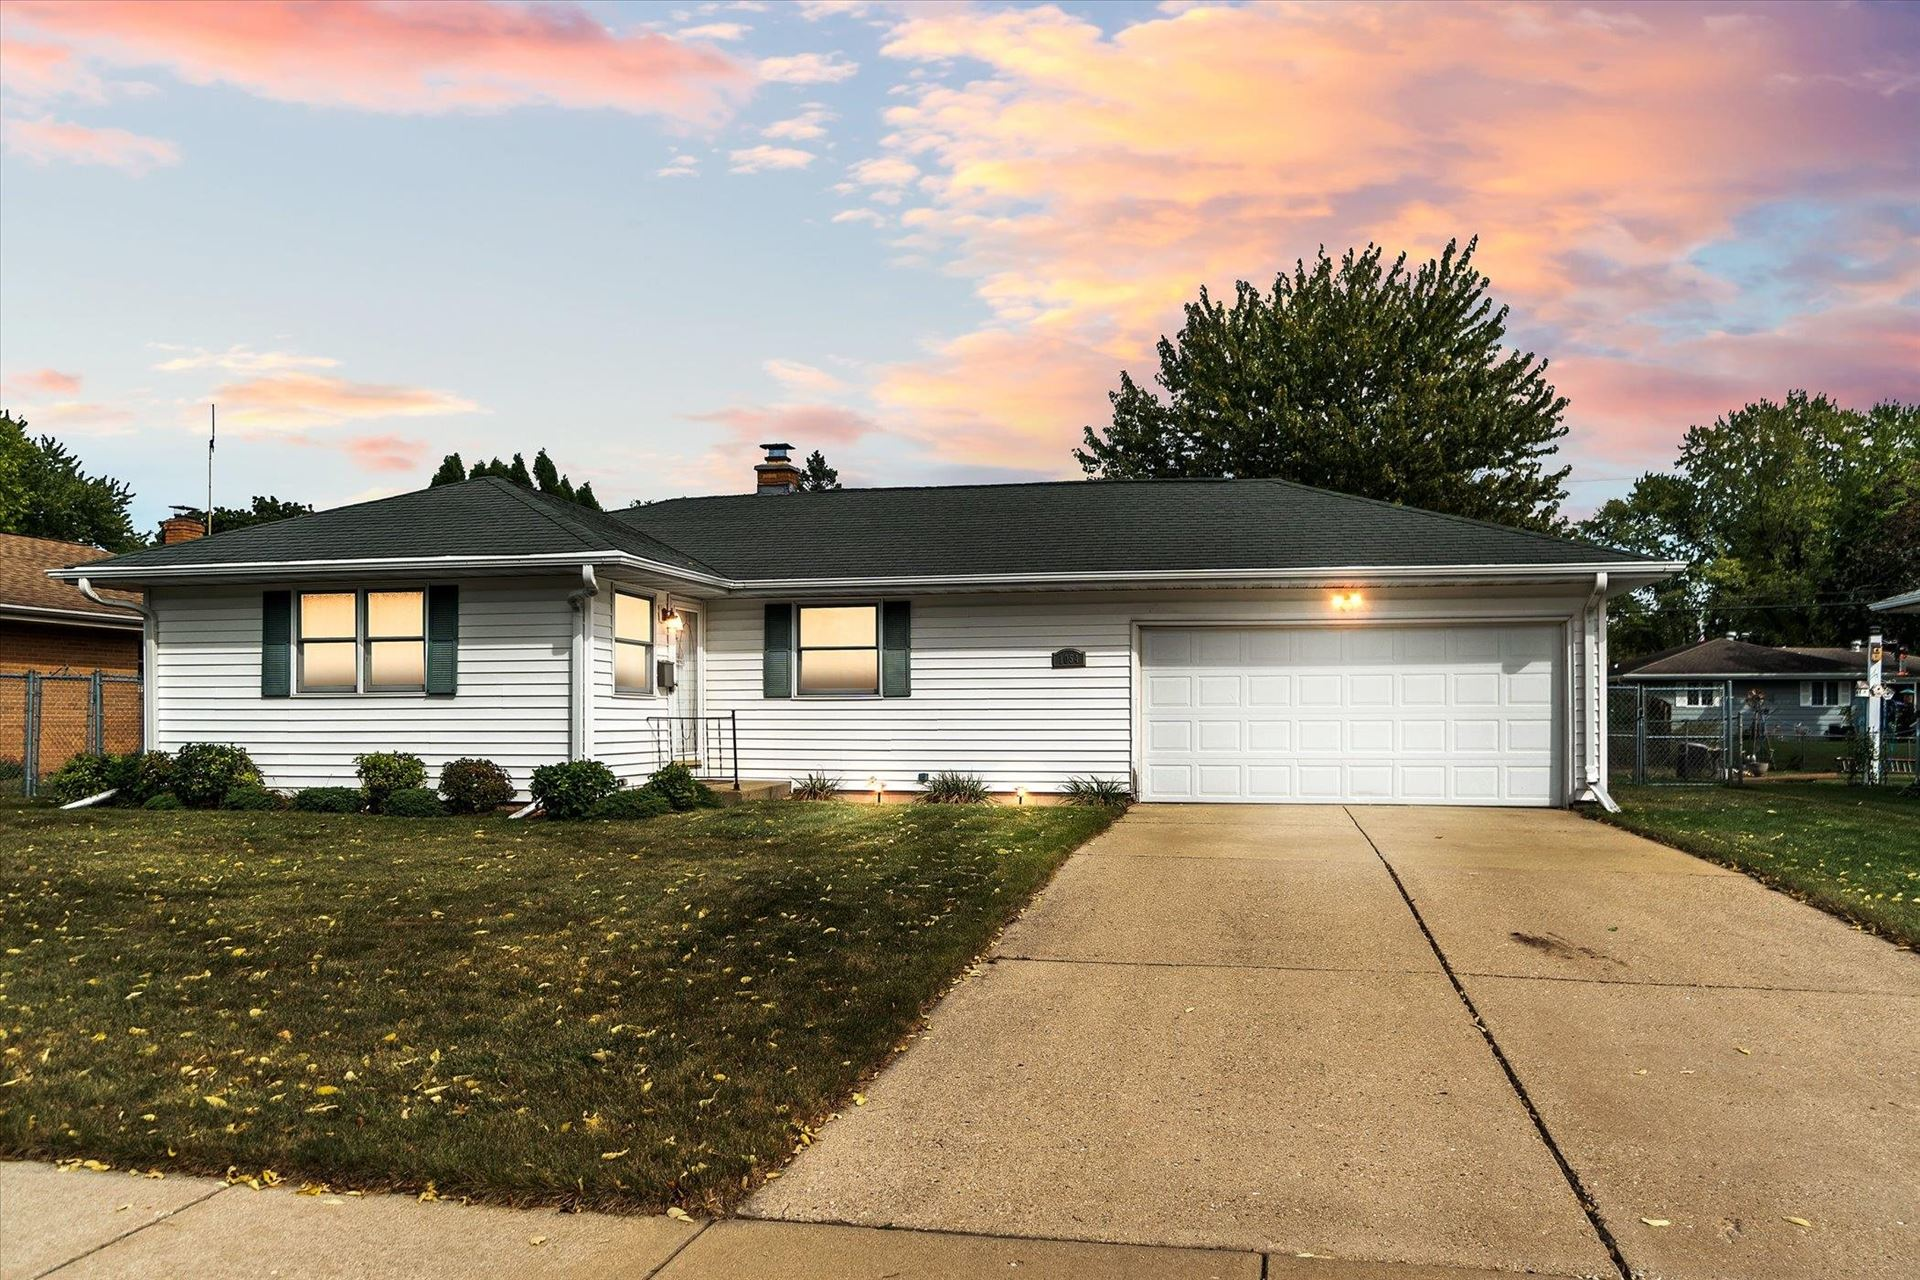 1054 N Randall Ave, Janesville, WI 53545 - #: 1920416